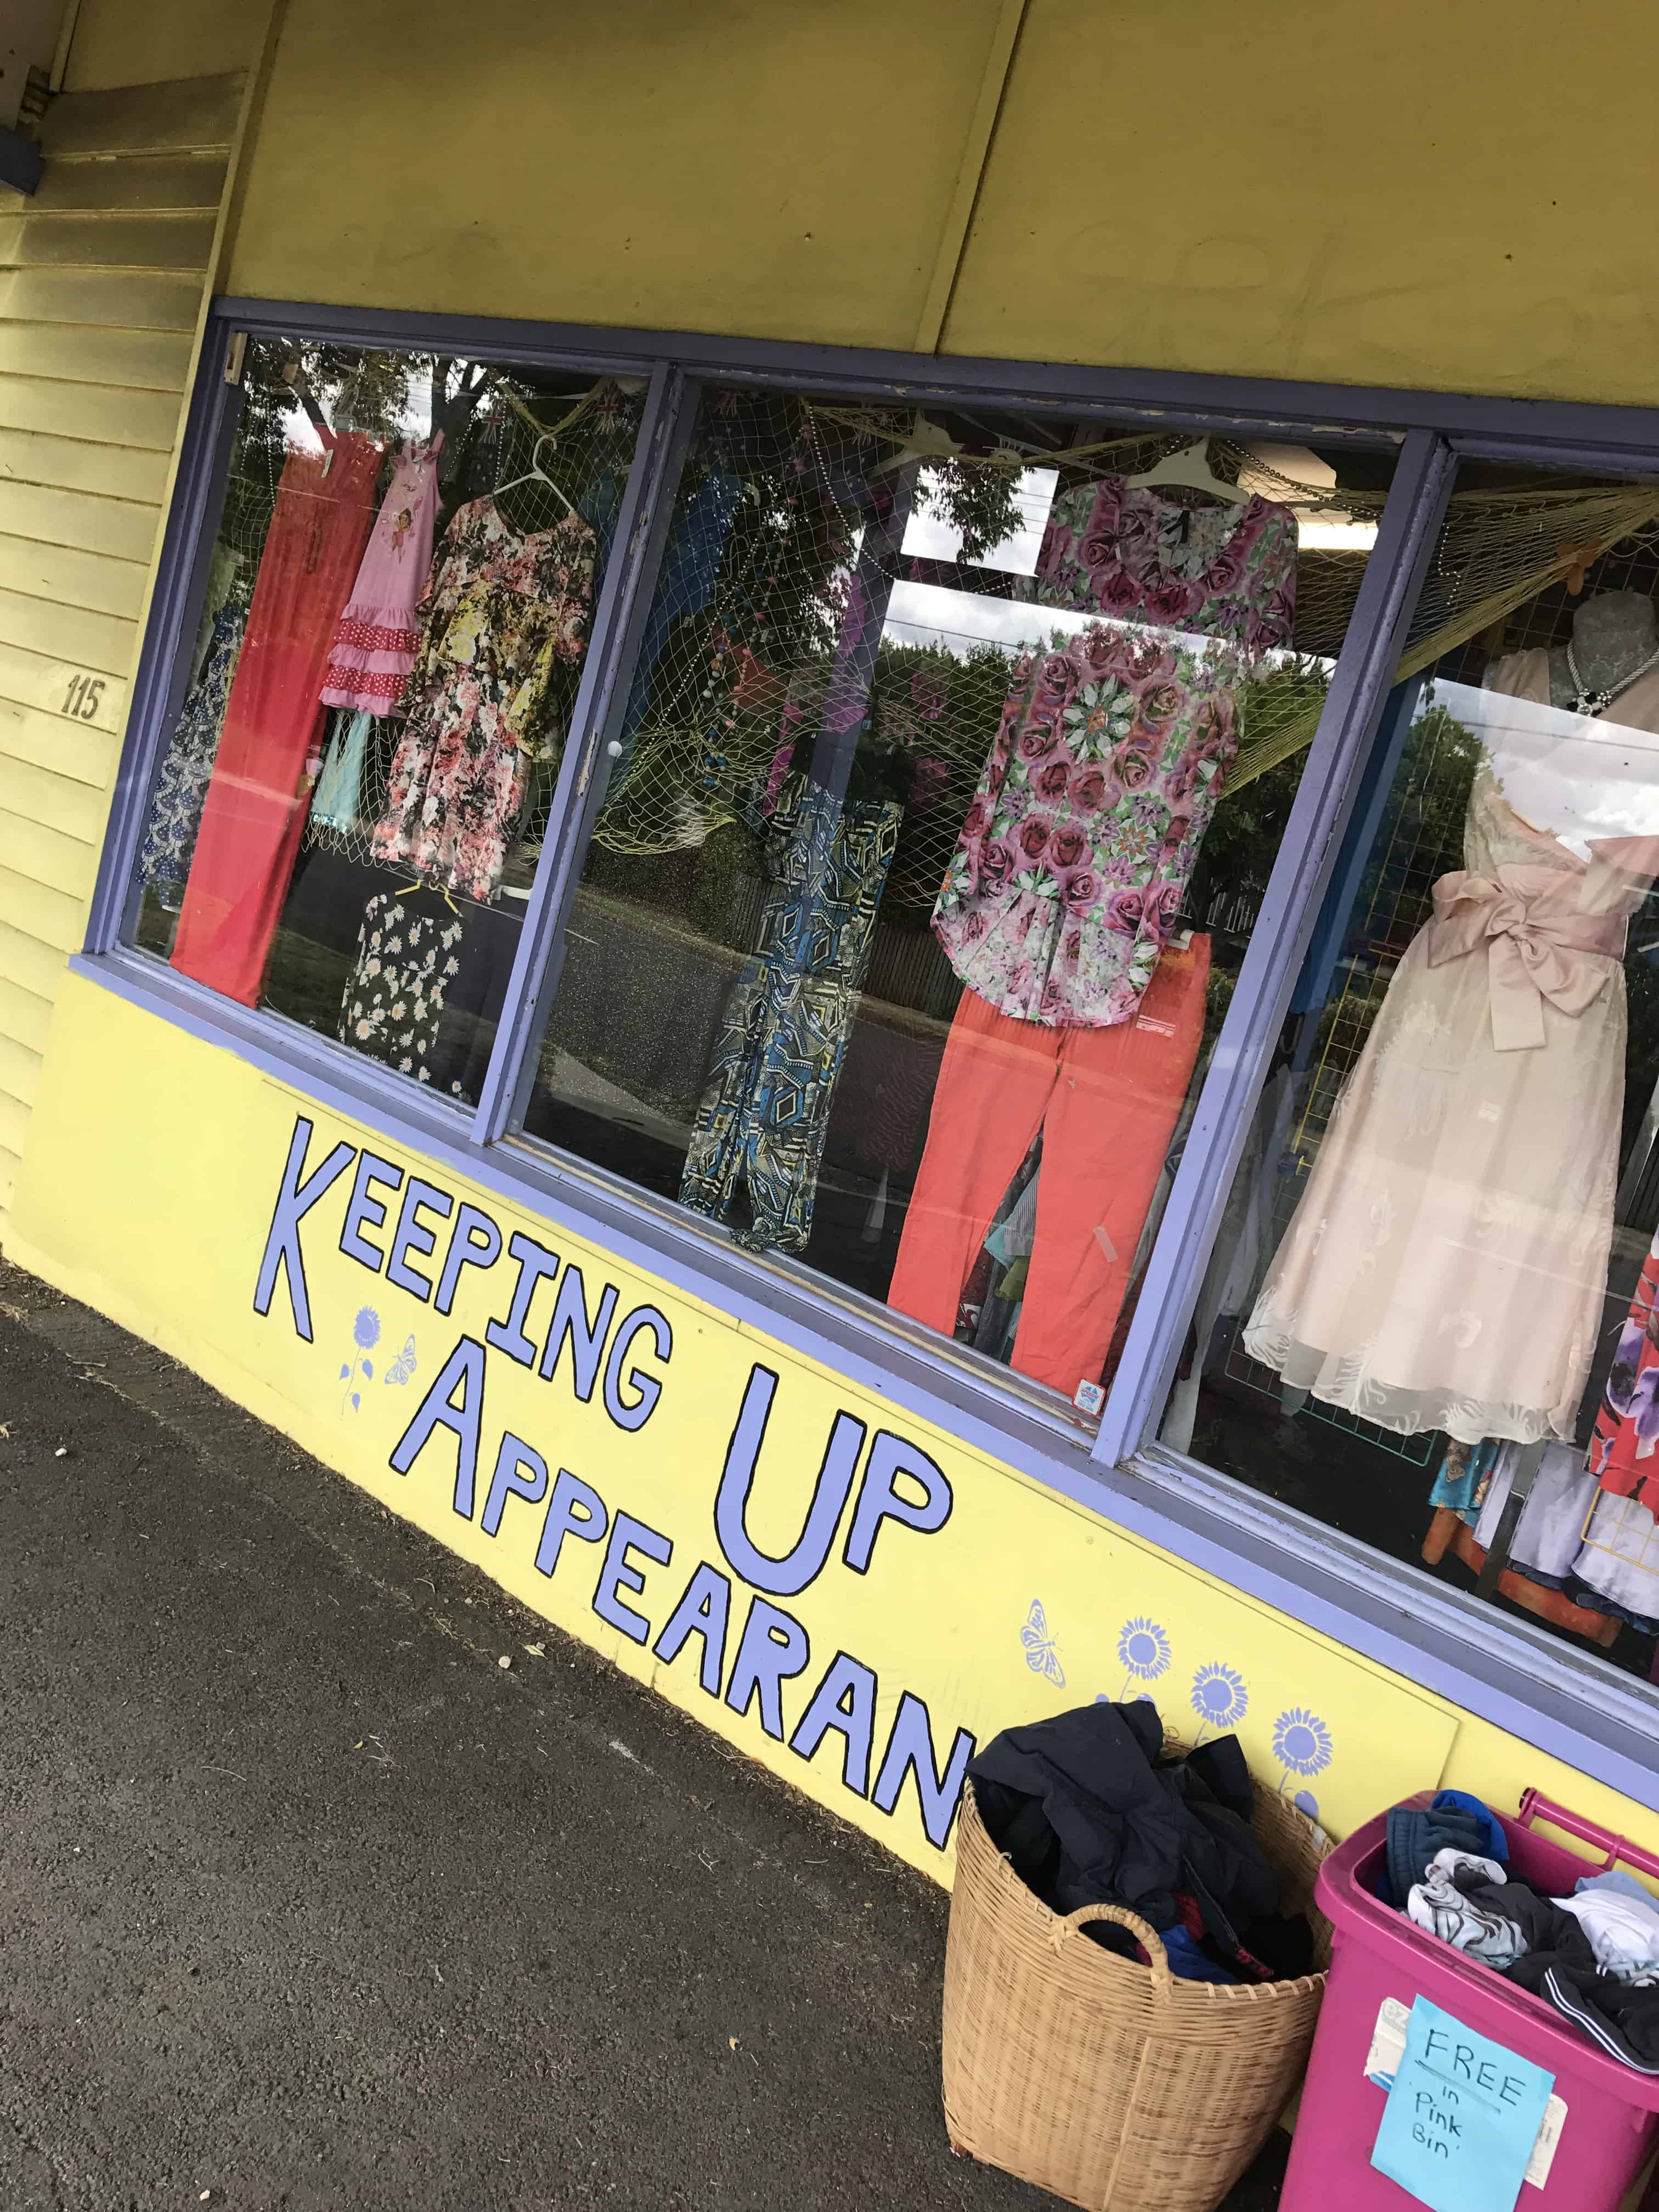 Keeping Up Appearances Ipswich